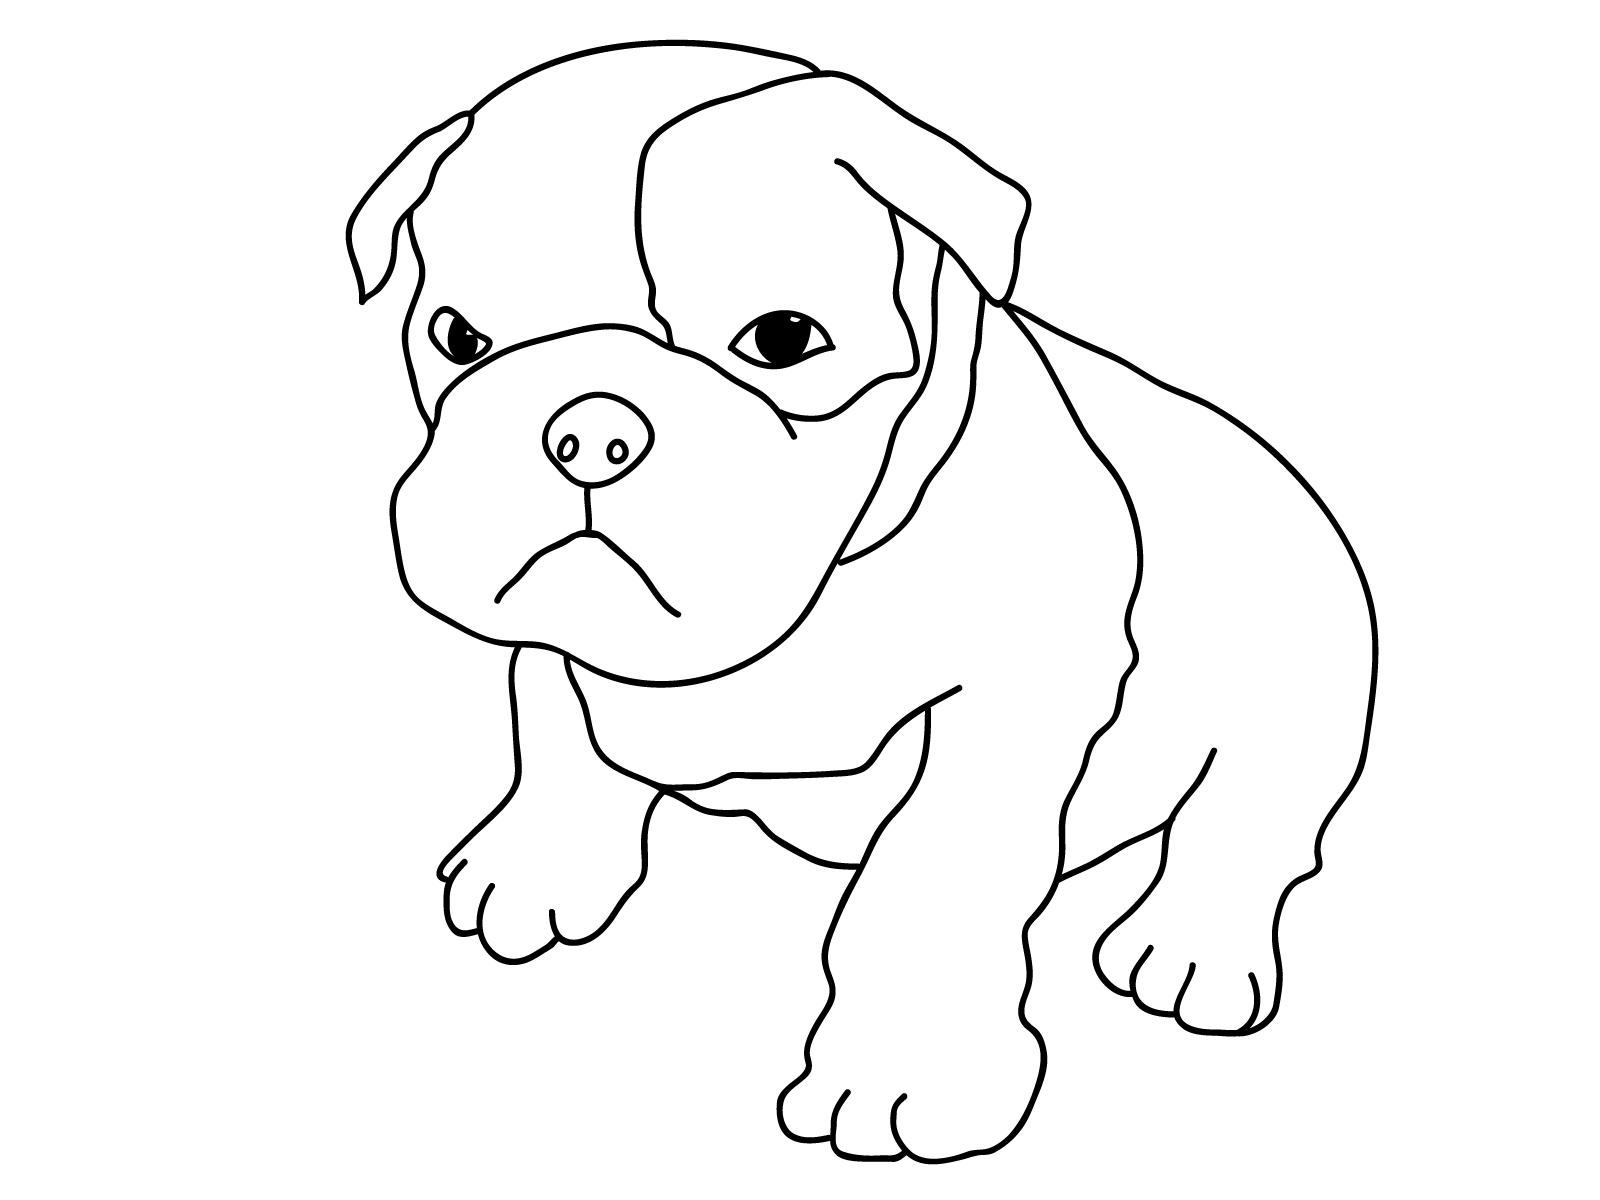 colouring dog cute dog coloring pages to download and print for free colouring dog